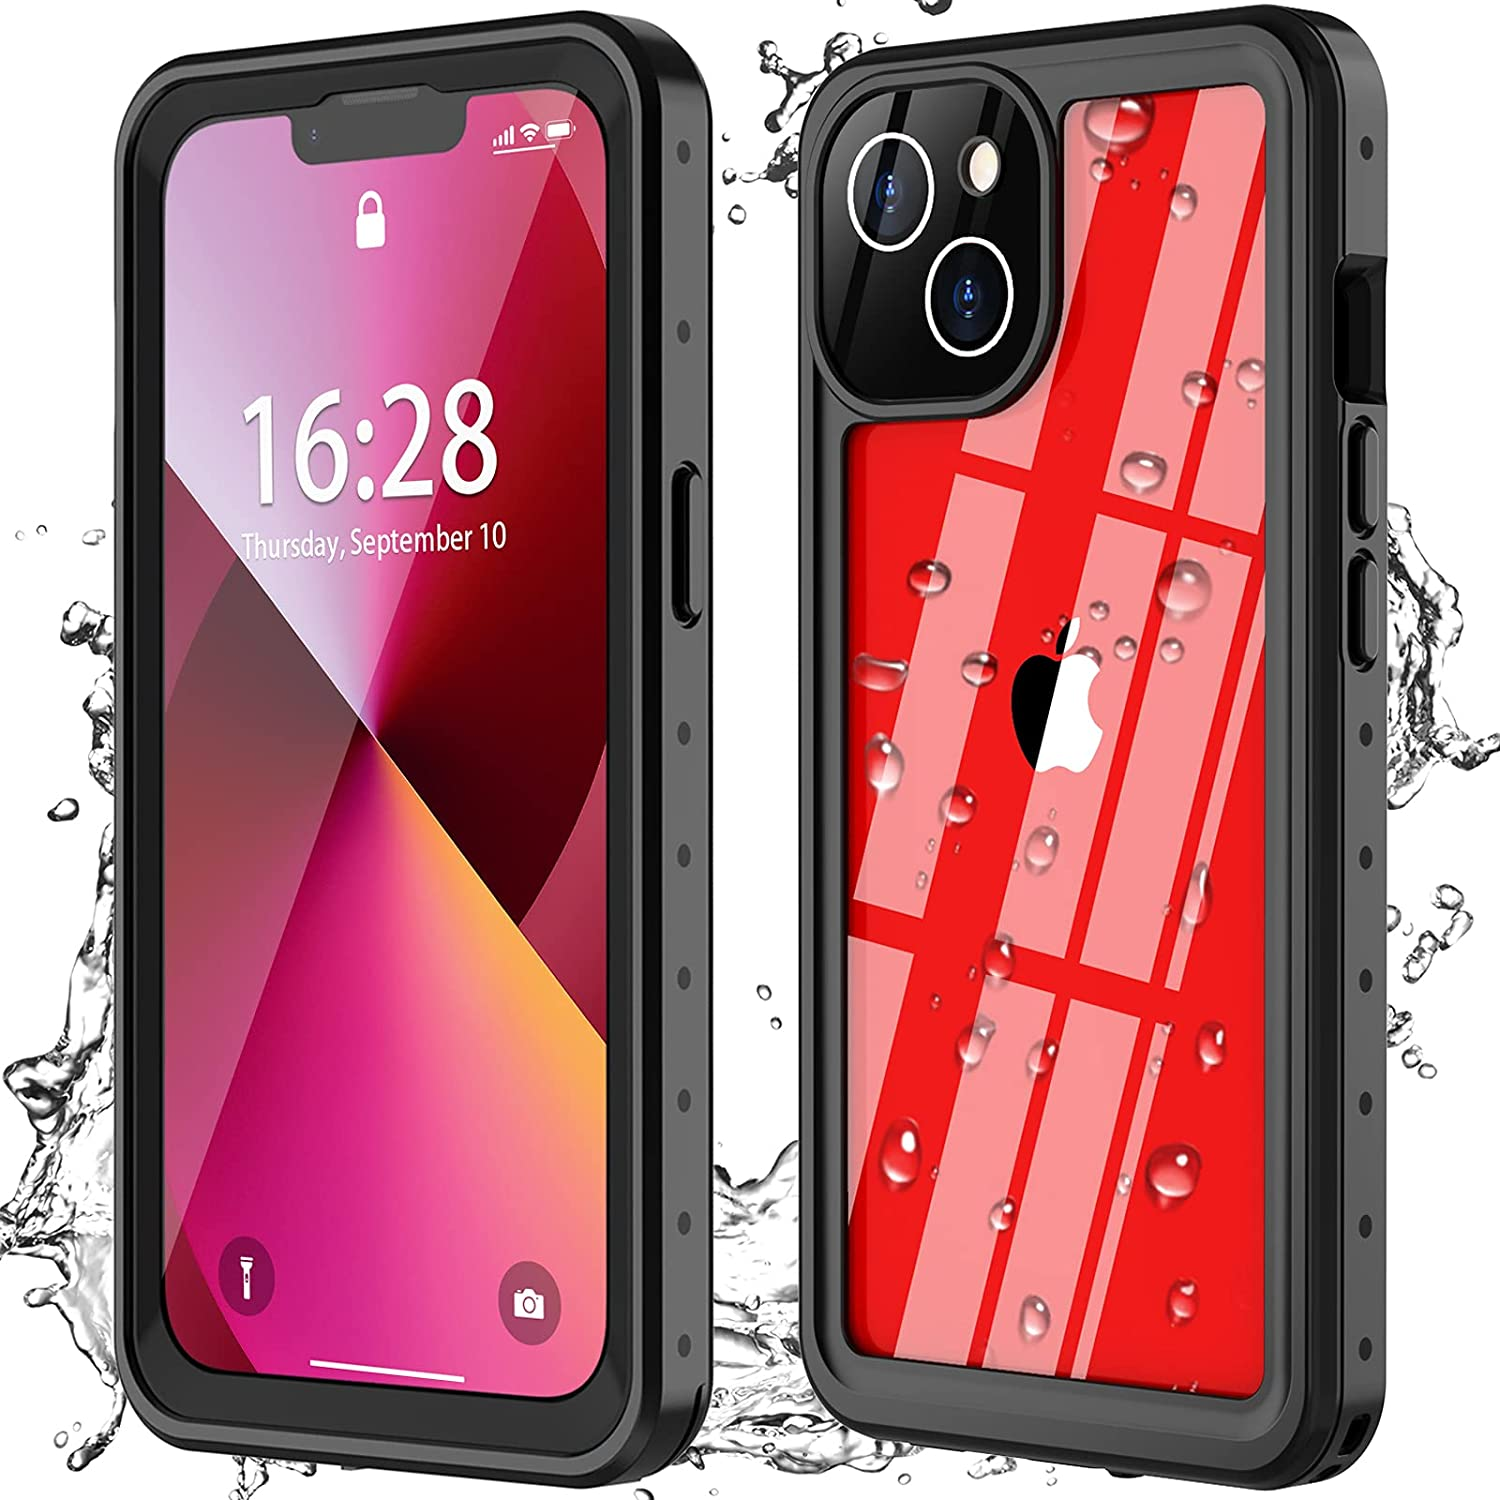 Oterkin for iPhone 13 Case,iPhone 13 Waterproof Case 360 Degree Full Sealed with Built-in Screen Protector Shockproof Dustproof Clear Case for iPhone 13 6.1 inch 2021(Black)